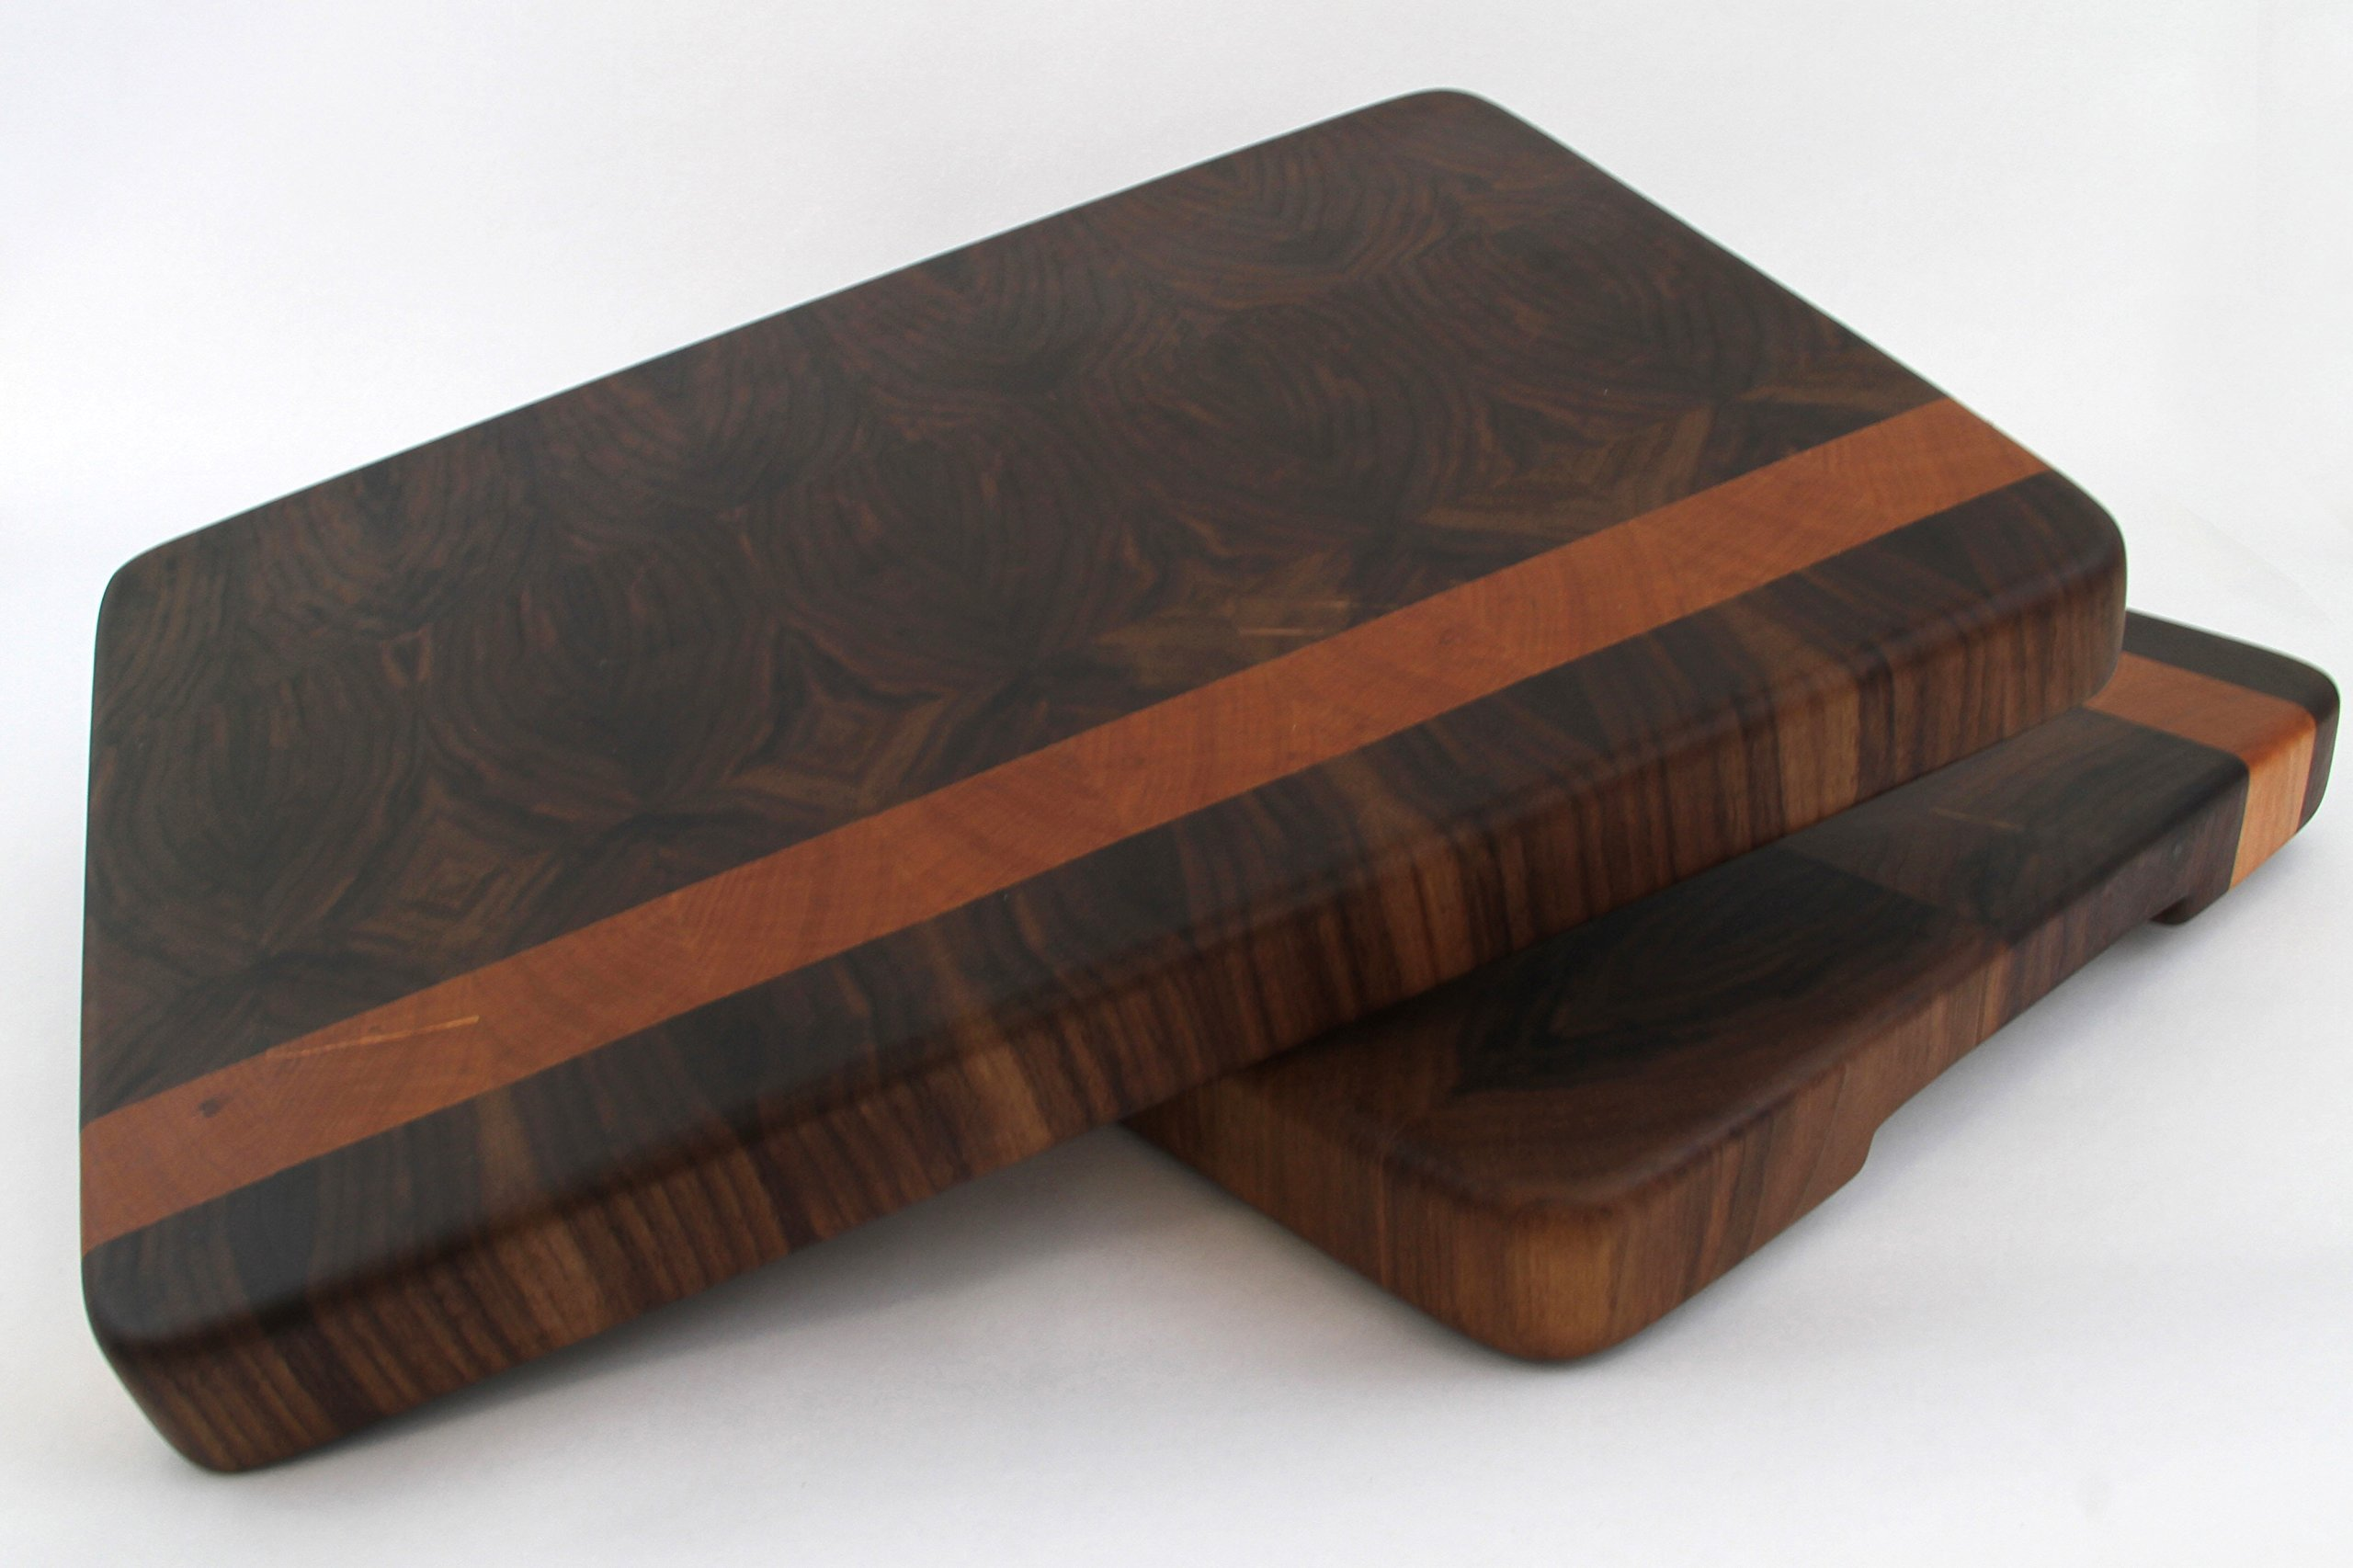 Handcrafted Wood Cutting Board - Edge Grain - Cherry & Walnut. No slip and easy grips. For him or her, Chefs or cooks